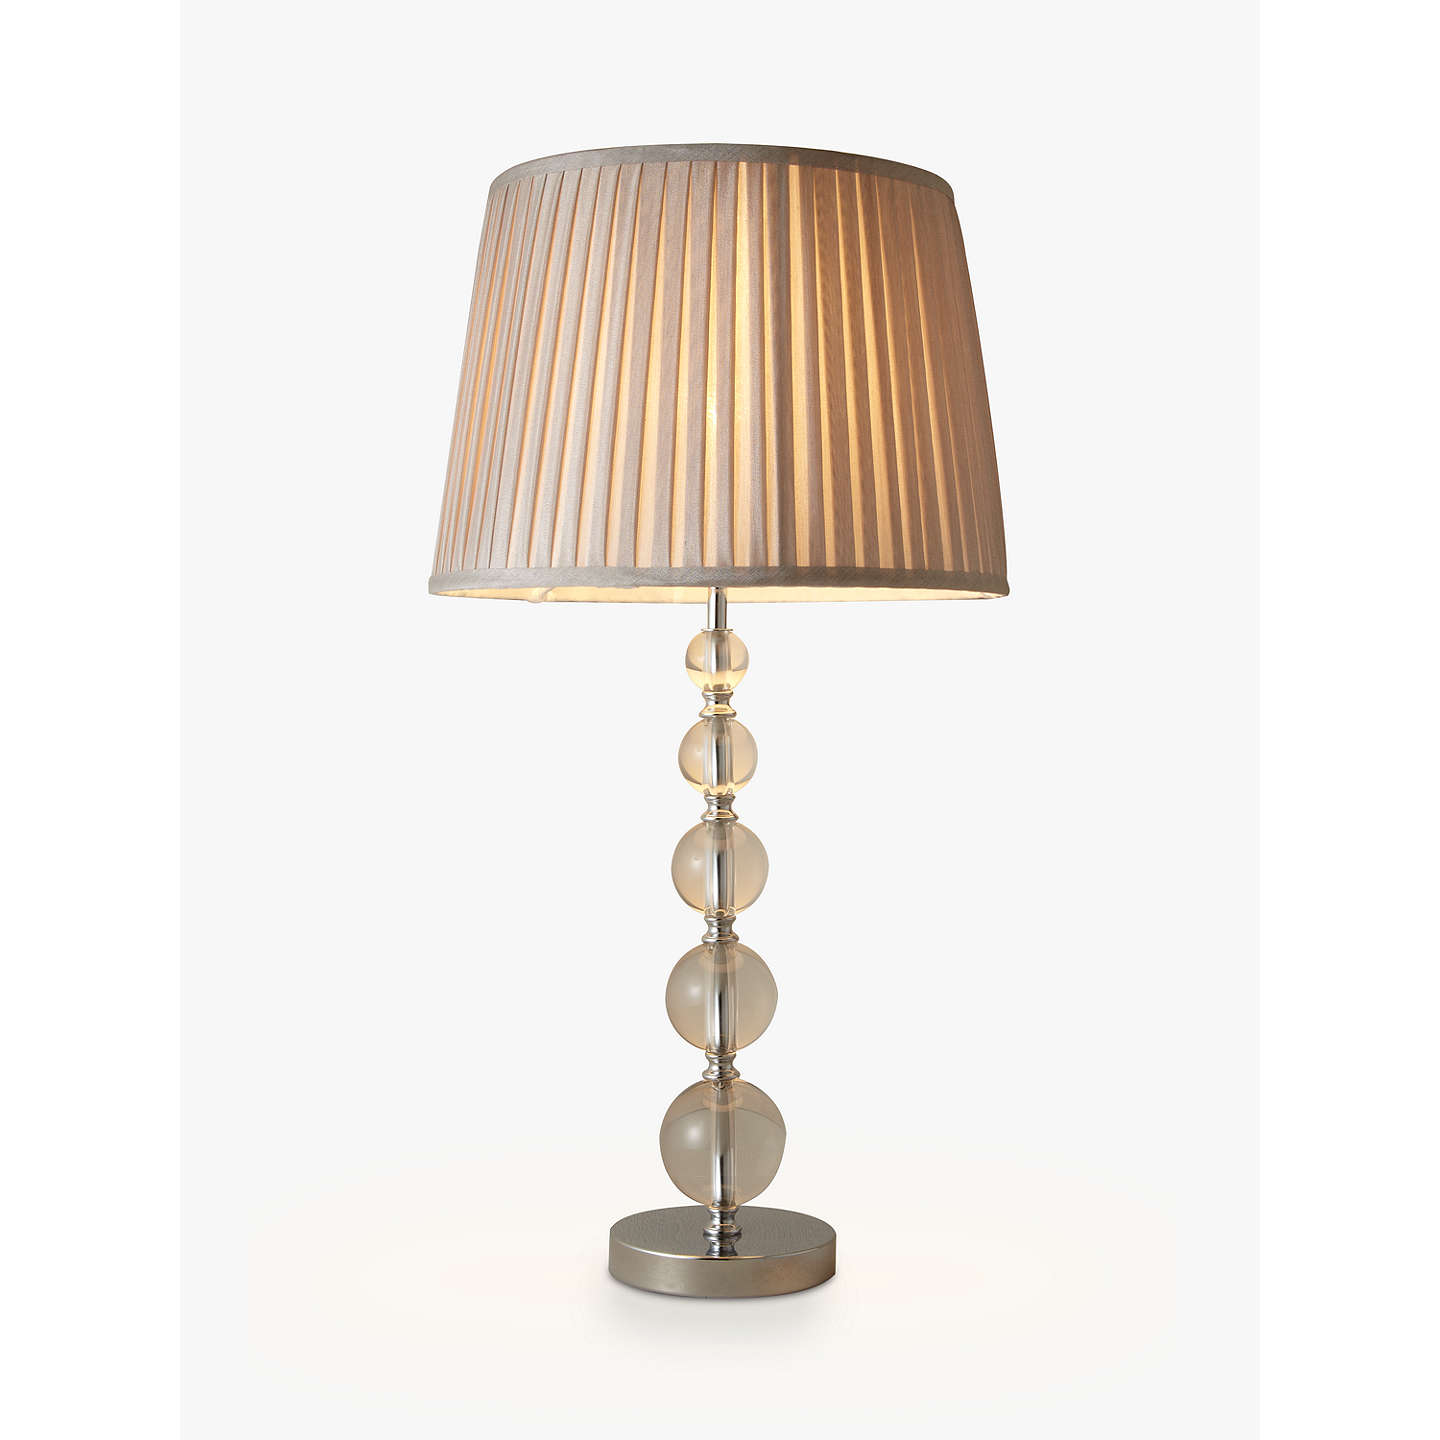 John lewis lavinia large glass table lamp at john lewis buyjohn lewis lavinia large glass table lamp online at johnlewis mozeypictures Gallery